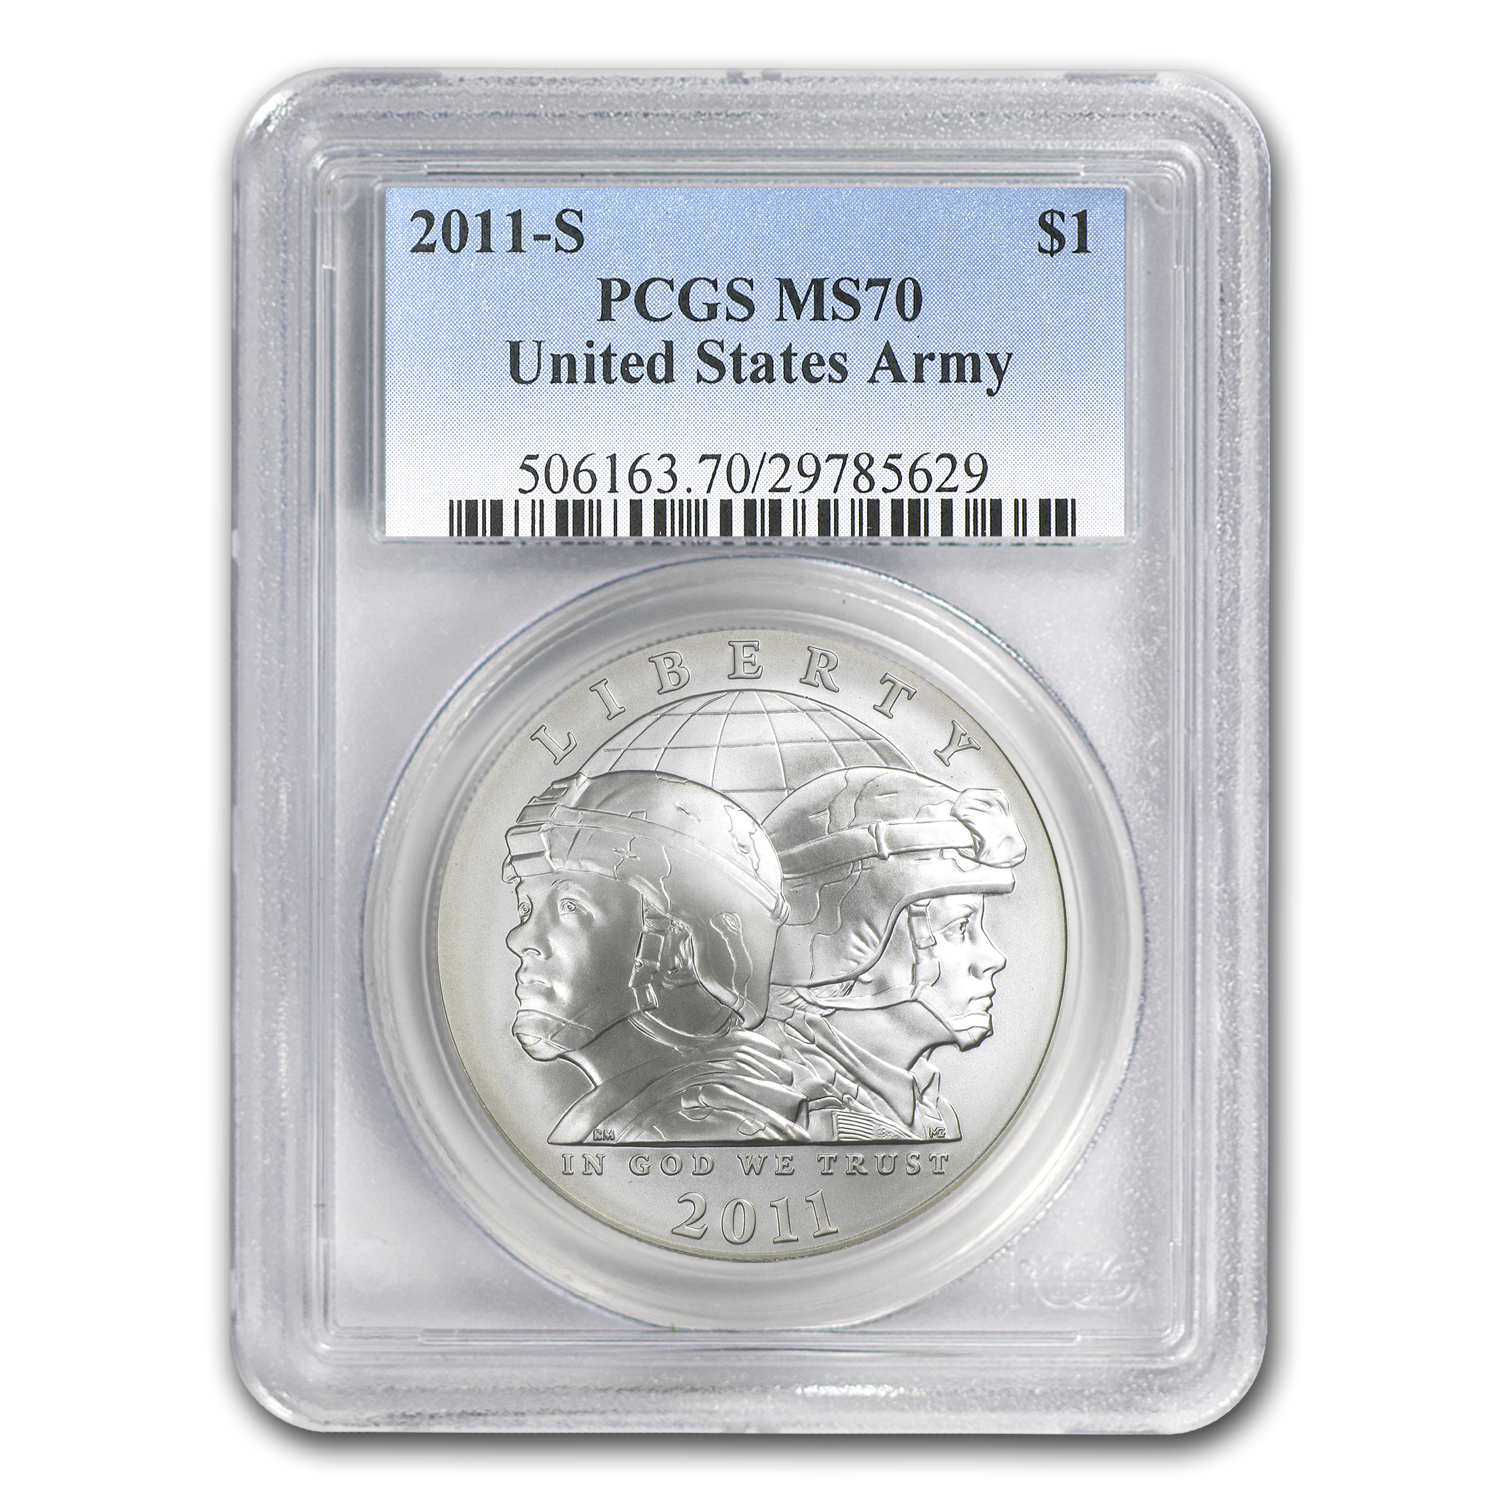 2011-S United States Army $1 Silver Commem MS-70 PCGS